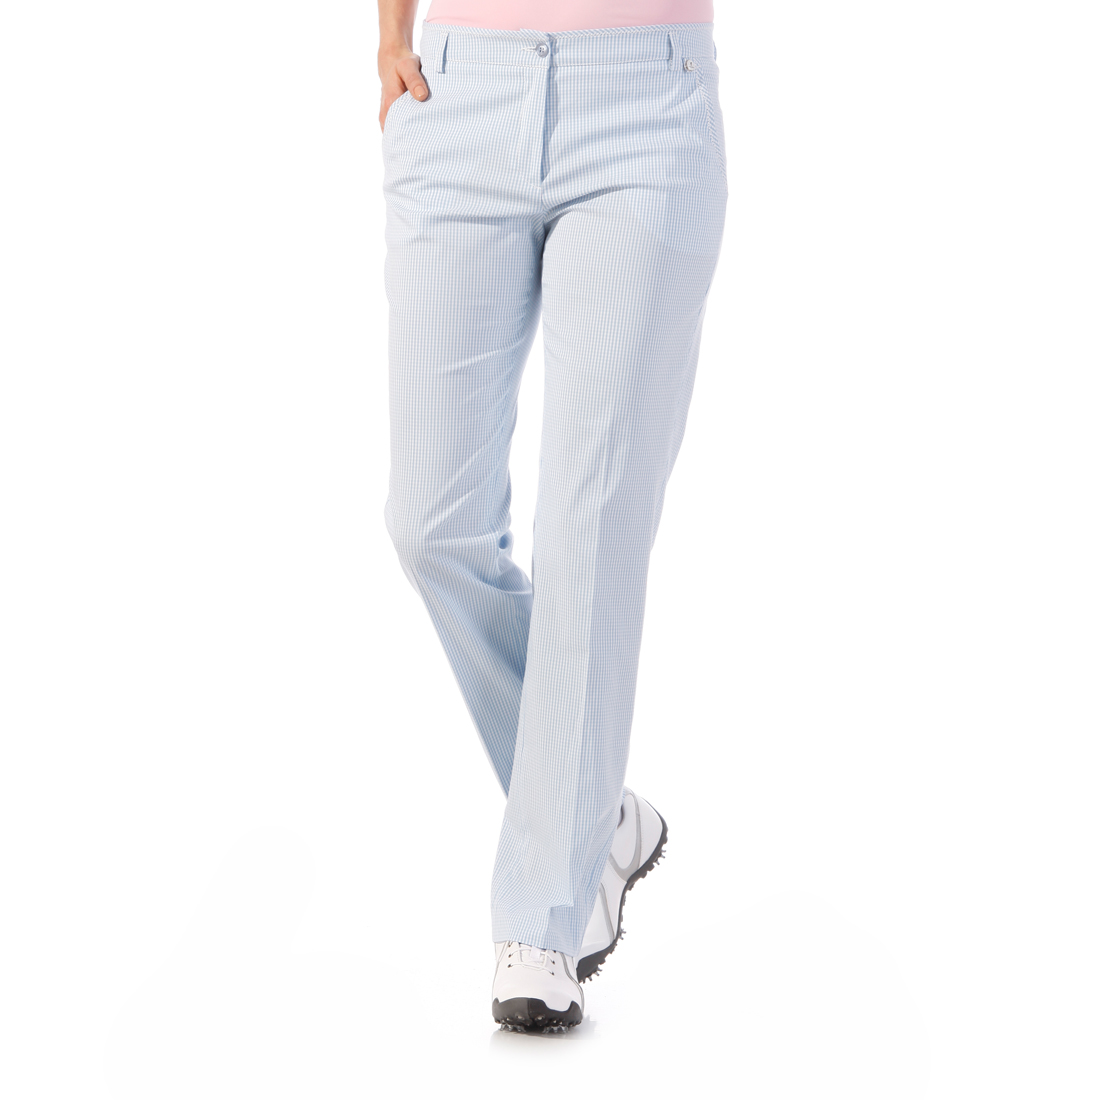 Stretch-Hose mit Vichy-Muster